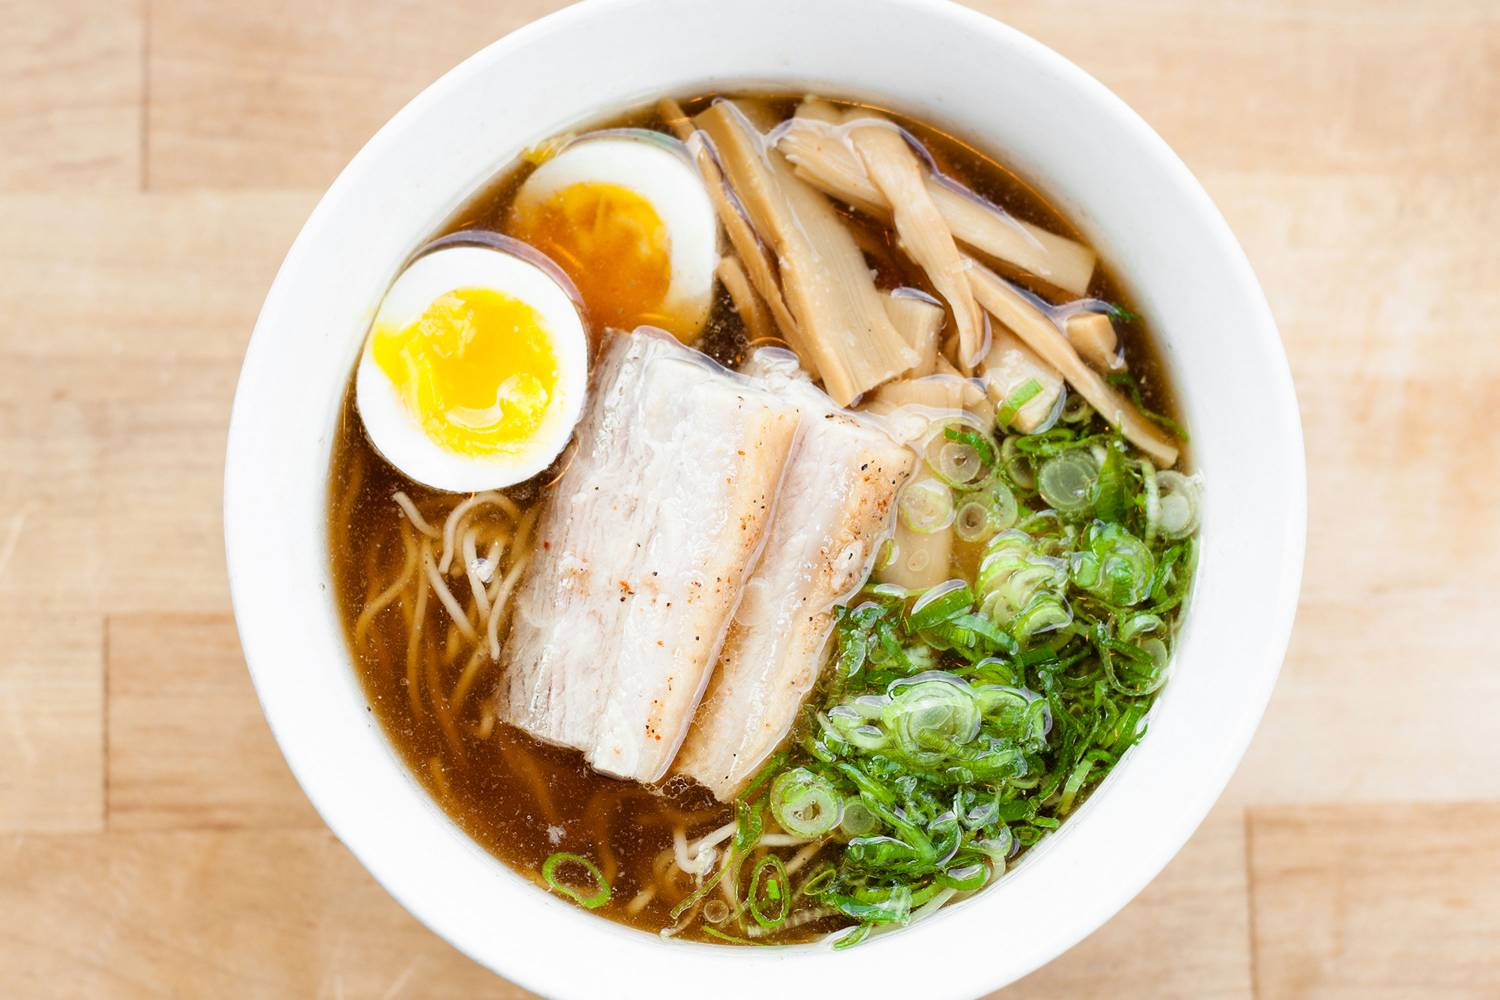 chuko-ramen-prospect-heights-brooklyn-nyc-soy-ramen__x_large.jpg